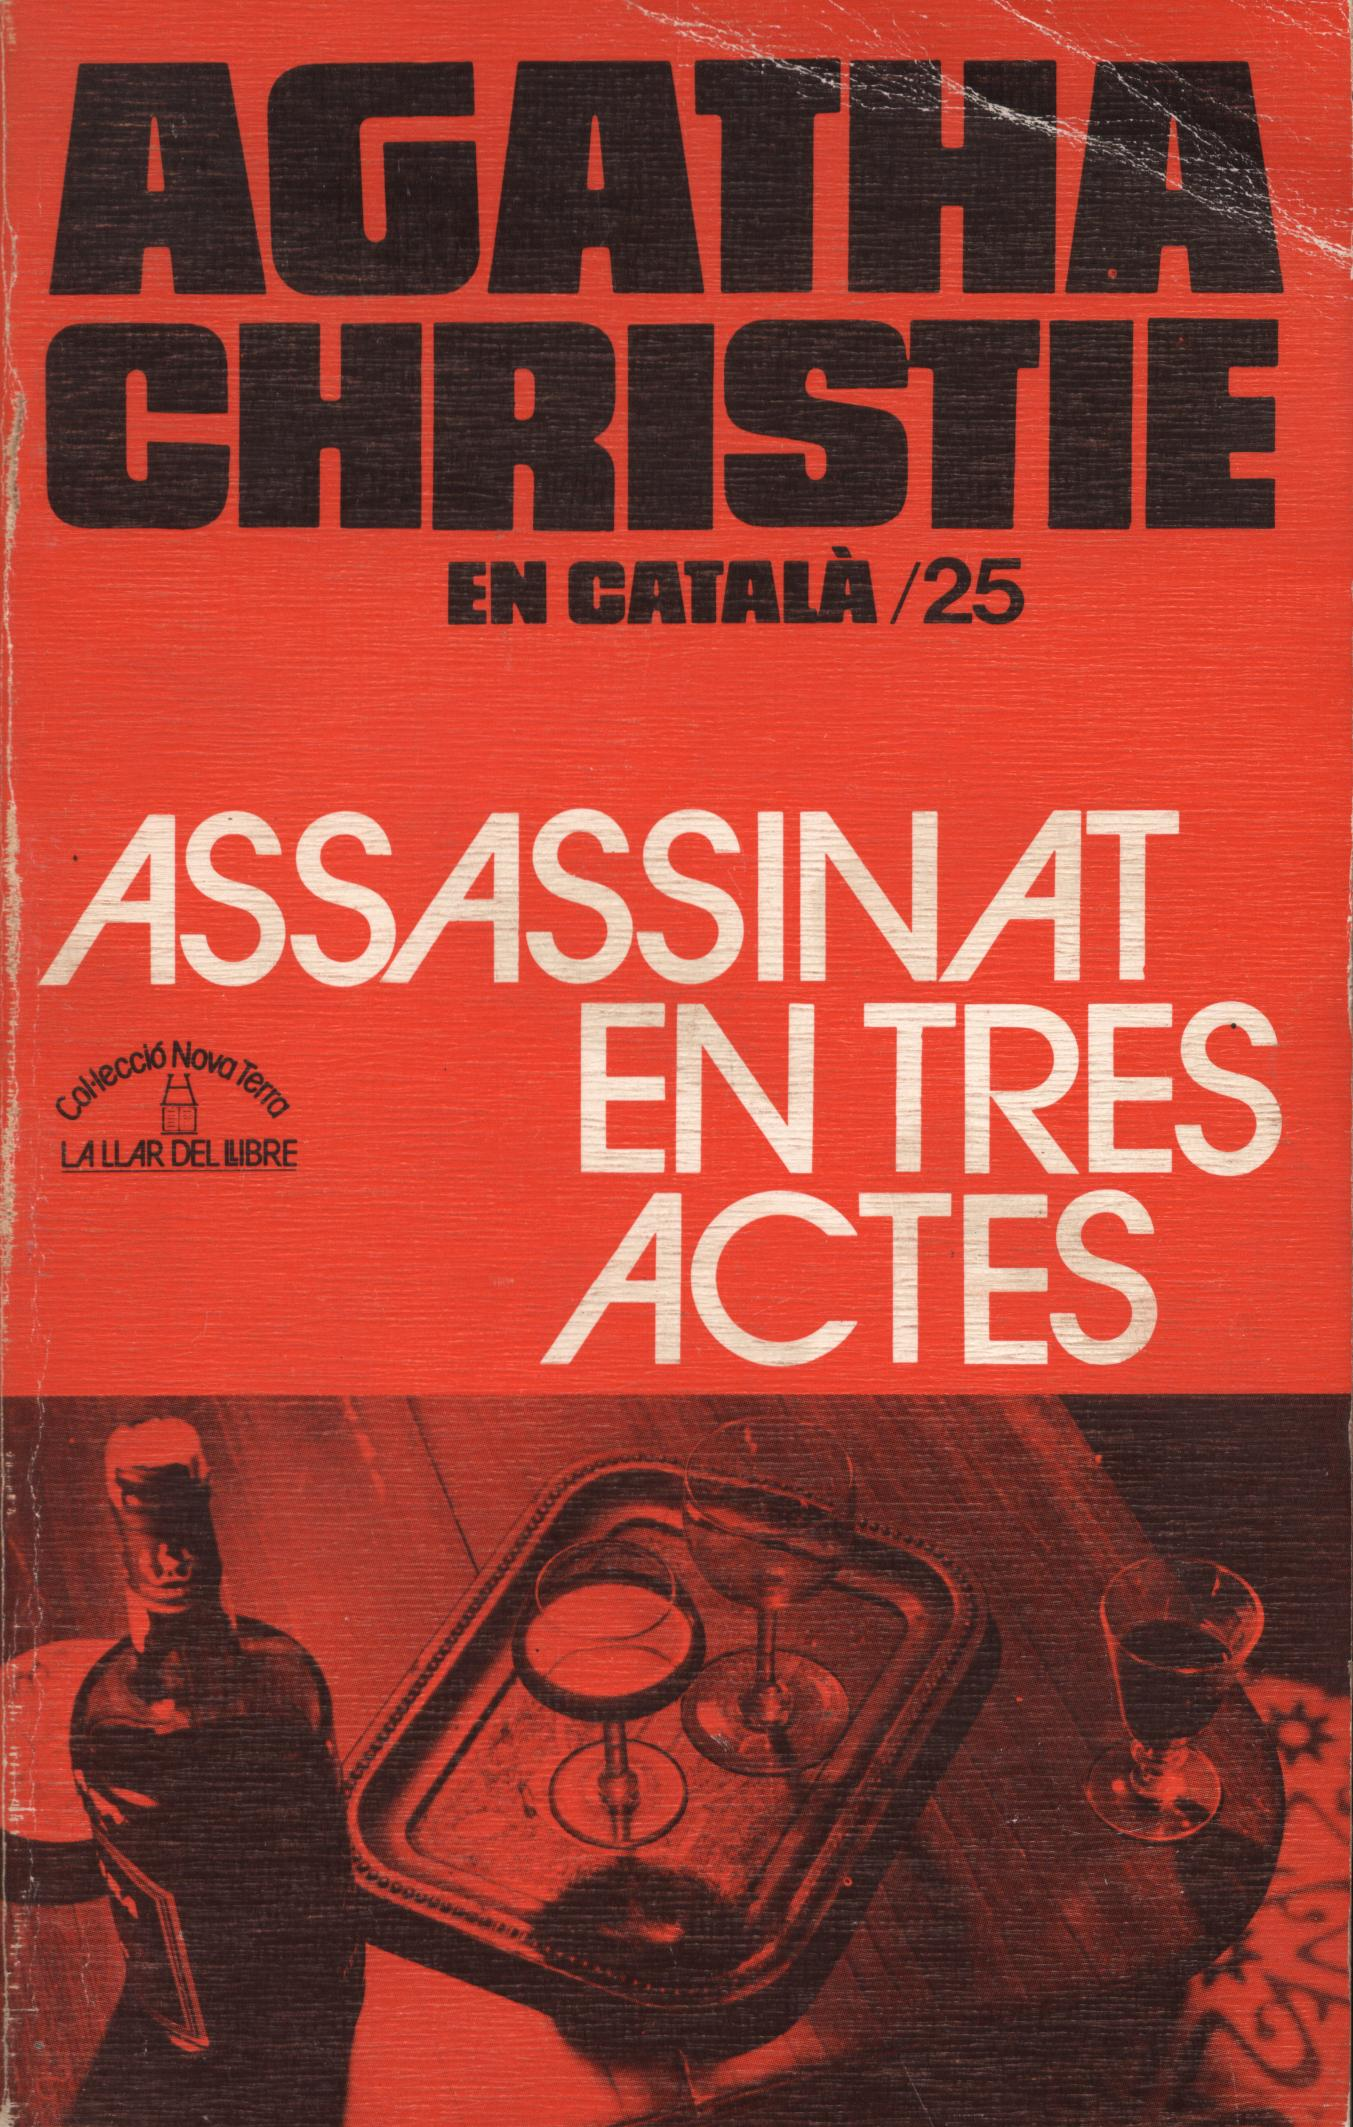 Assassinat en tres actes - Agatha Christie